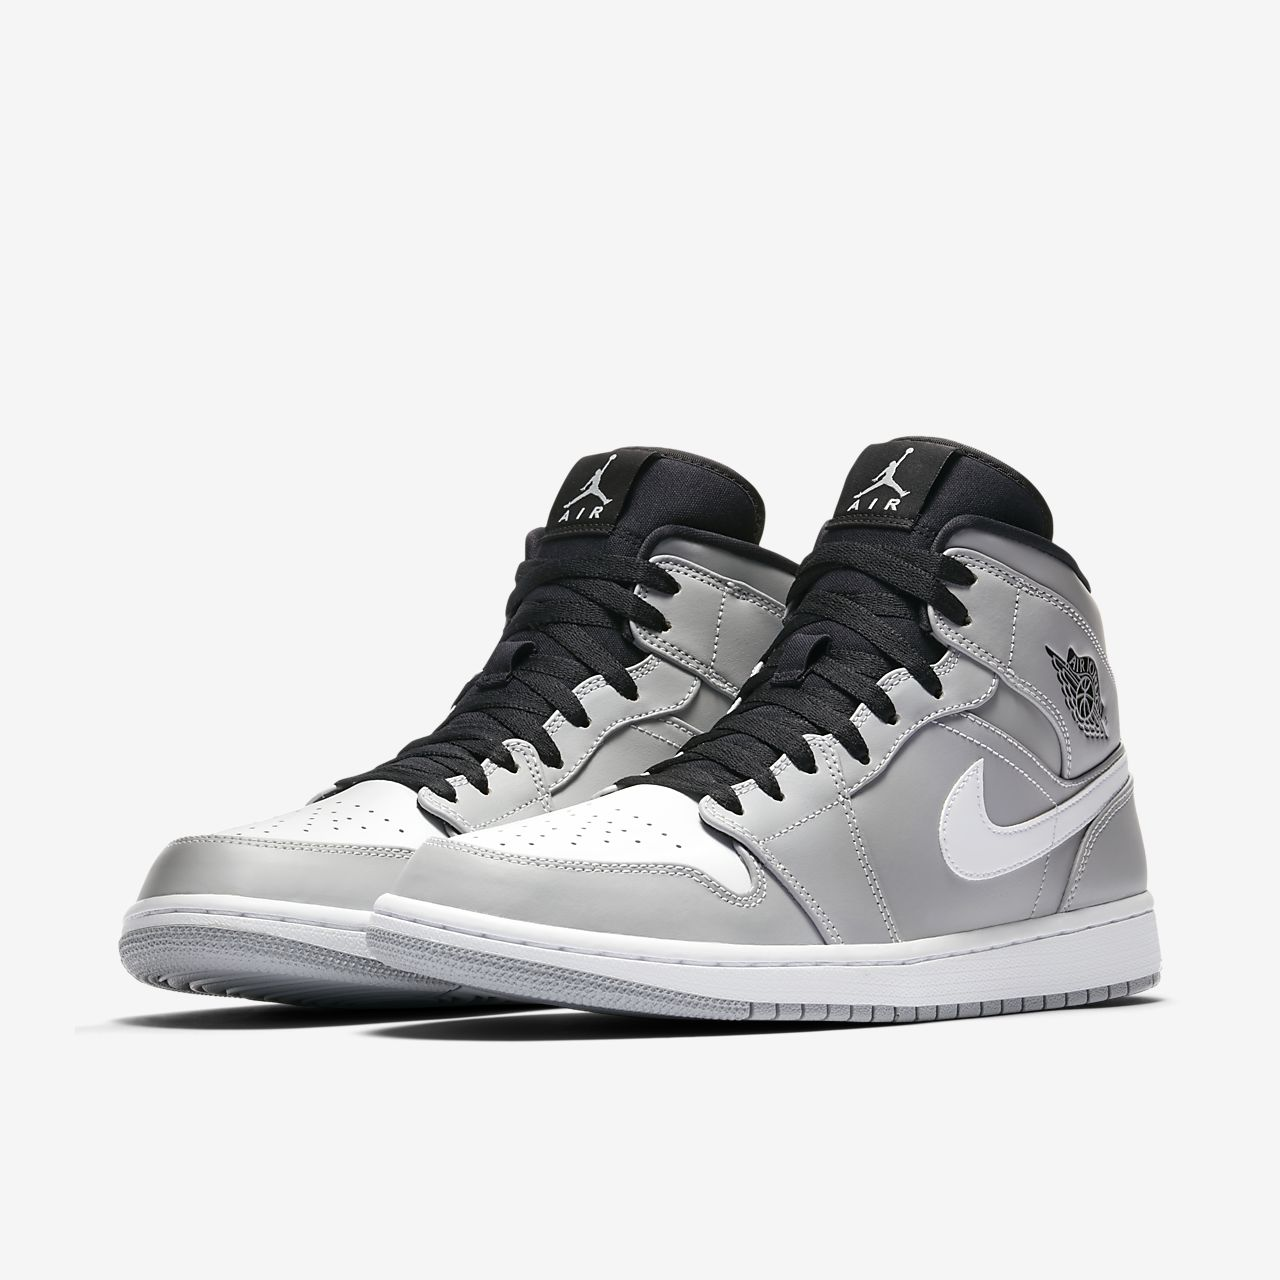 ... Air Jordan 1 Mid Men's Shoe